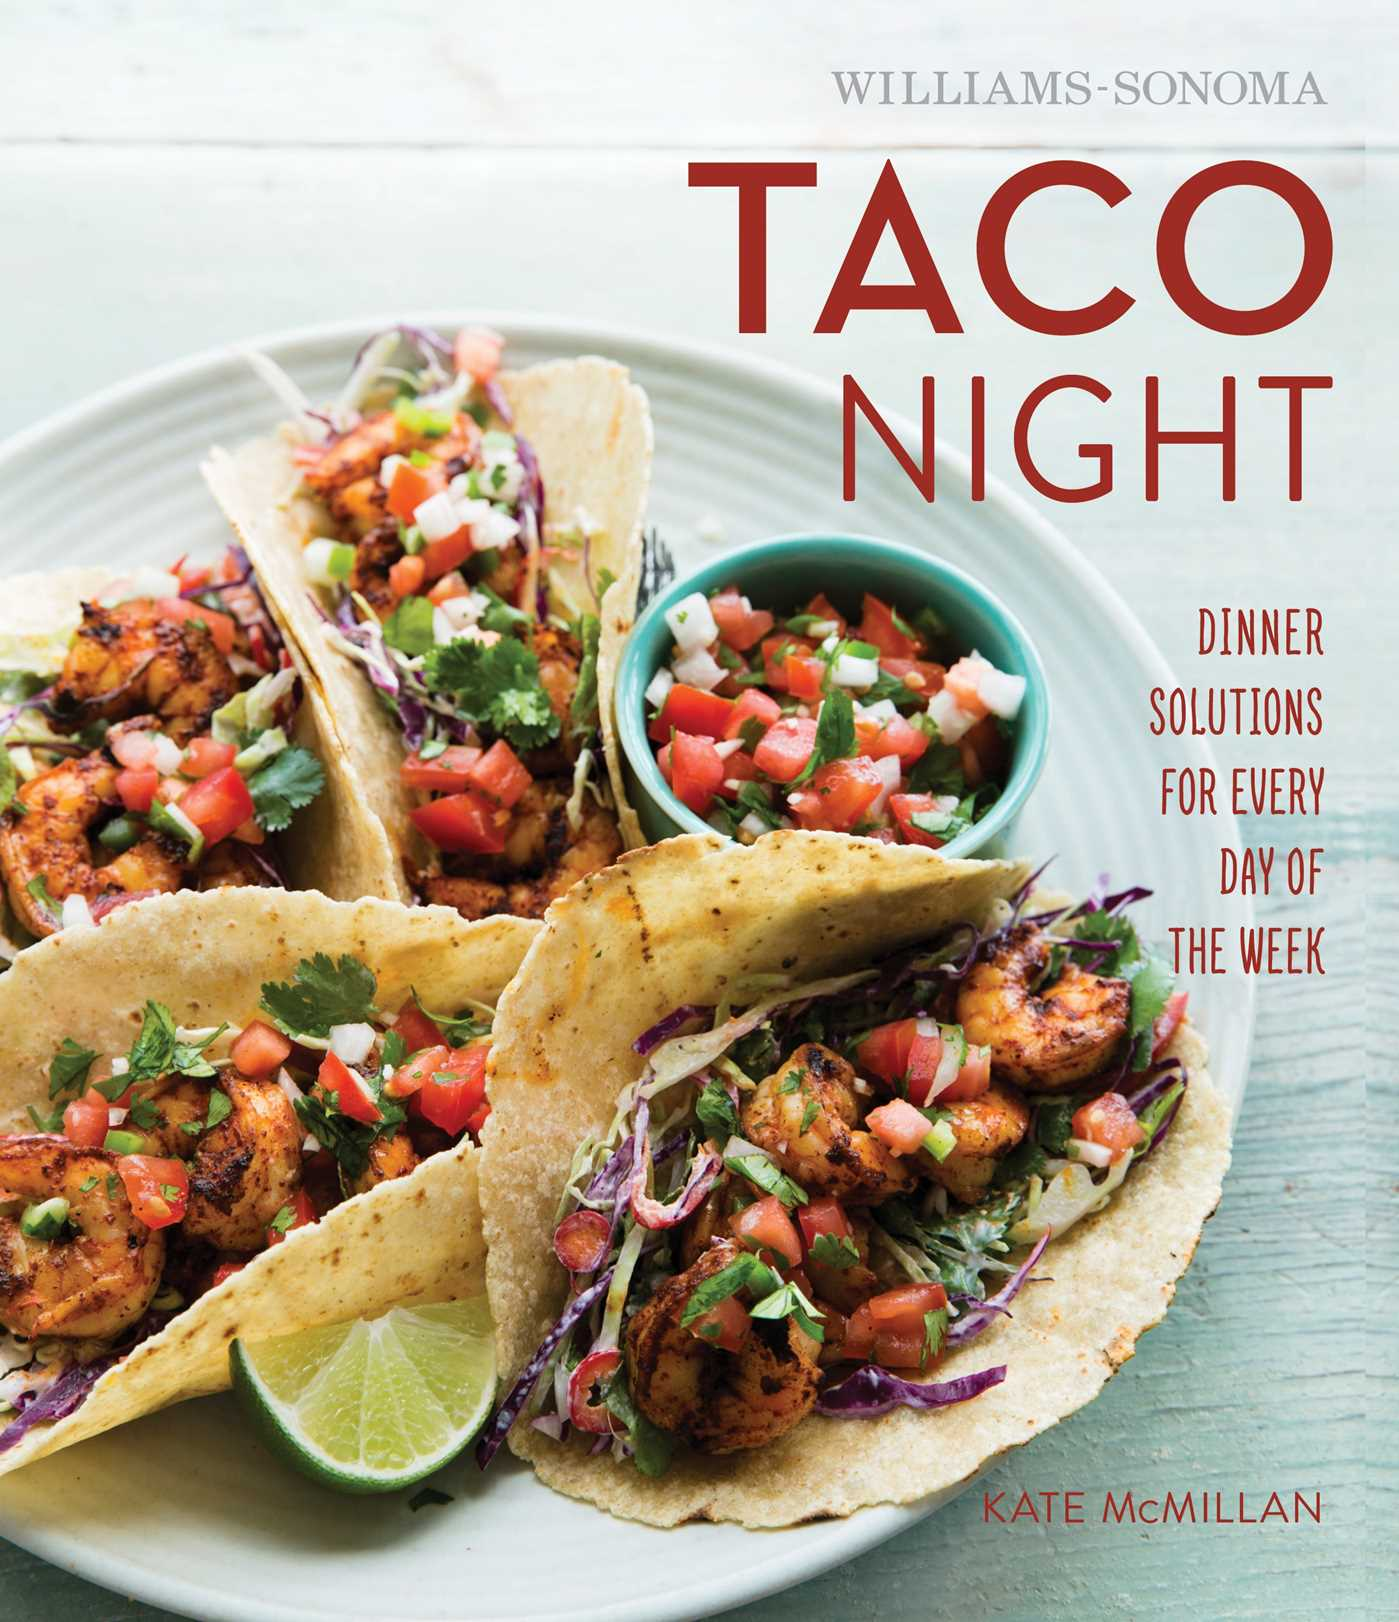 Taco night (williams sonoma) 9781616287337 hr